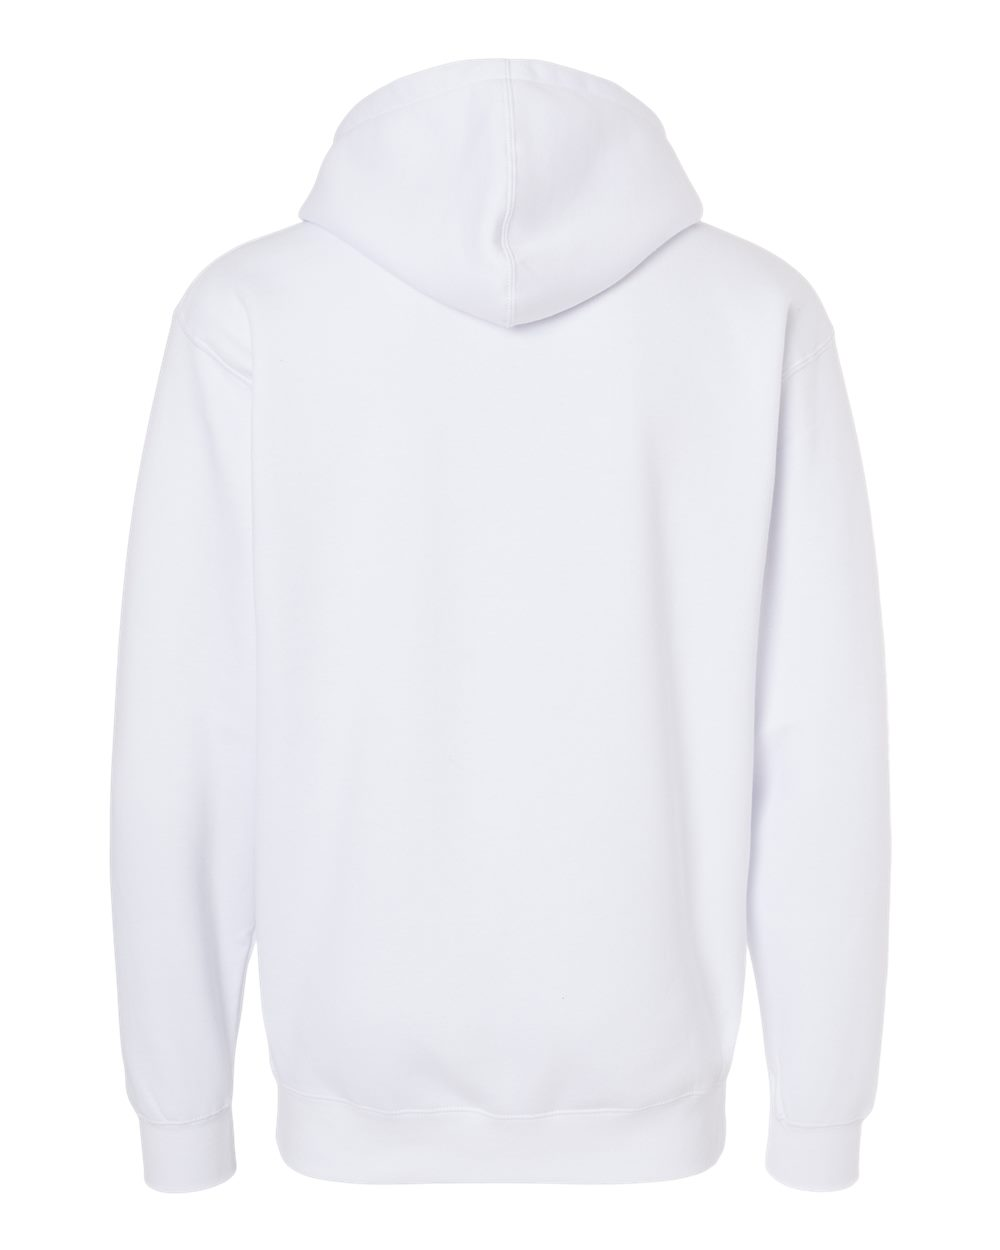 Independent-Trading-Co-Mens-Hooded-Pullover-Sweatshirt-IND4000-up-to-3XL miniature 88